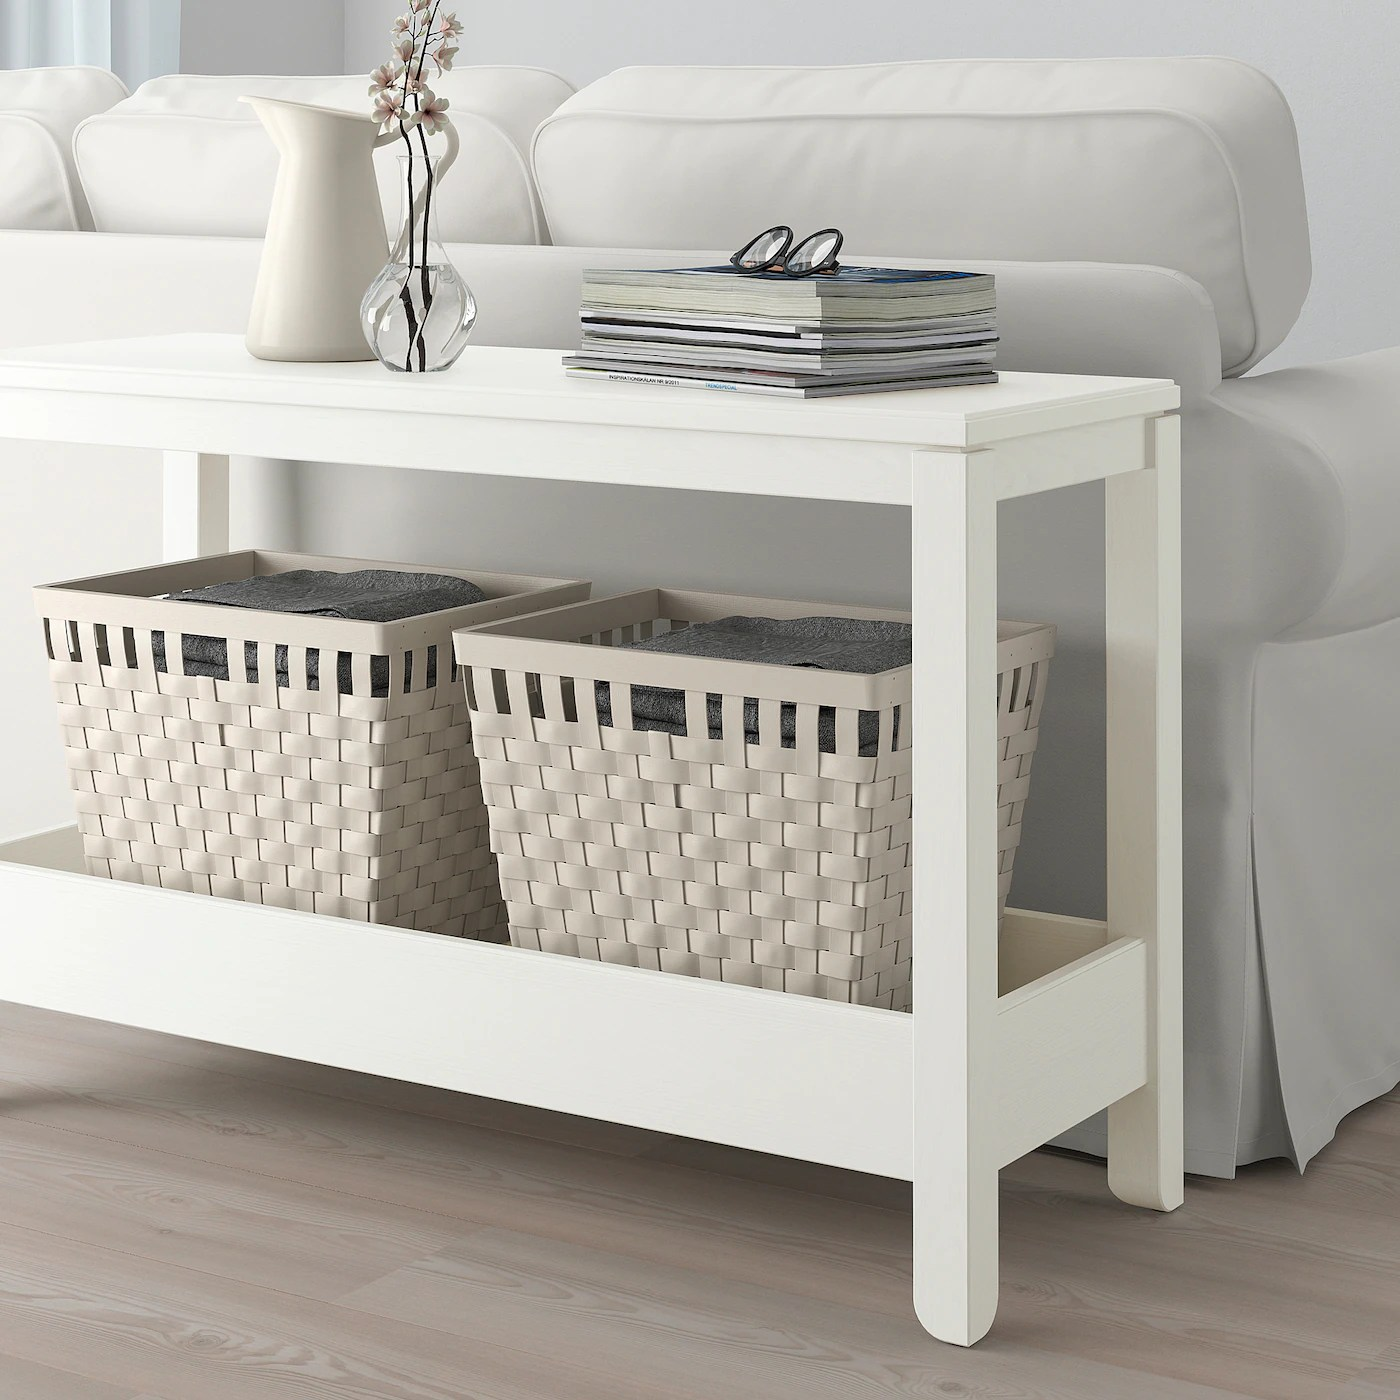 Havsta White Console Table 100x35x63 Cm Ikea